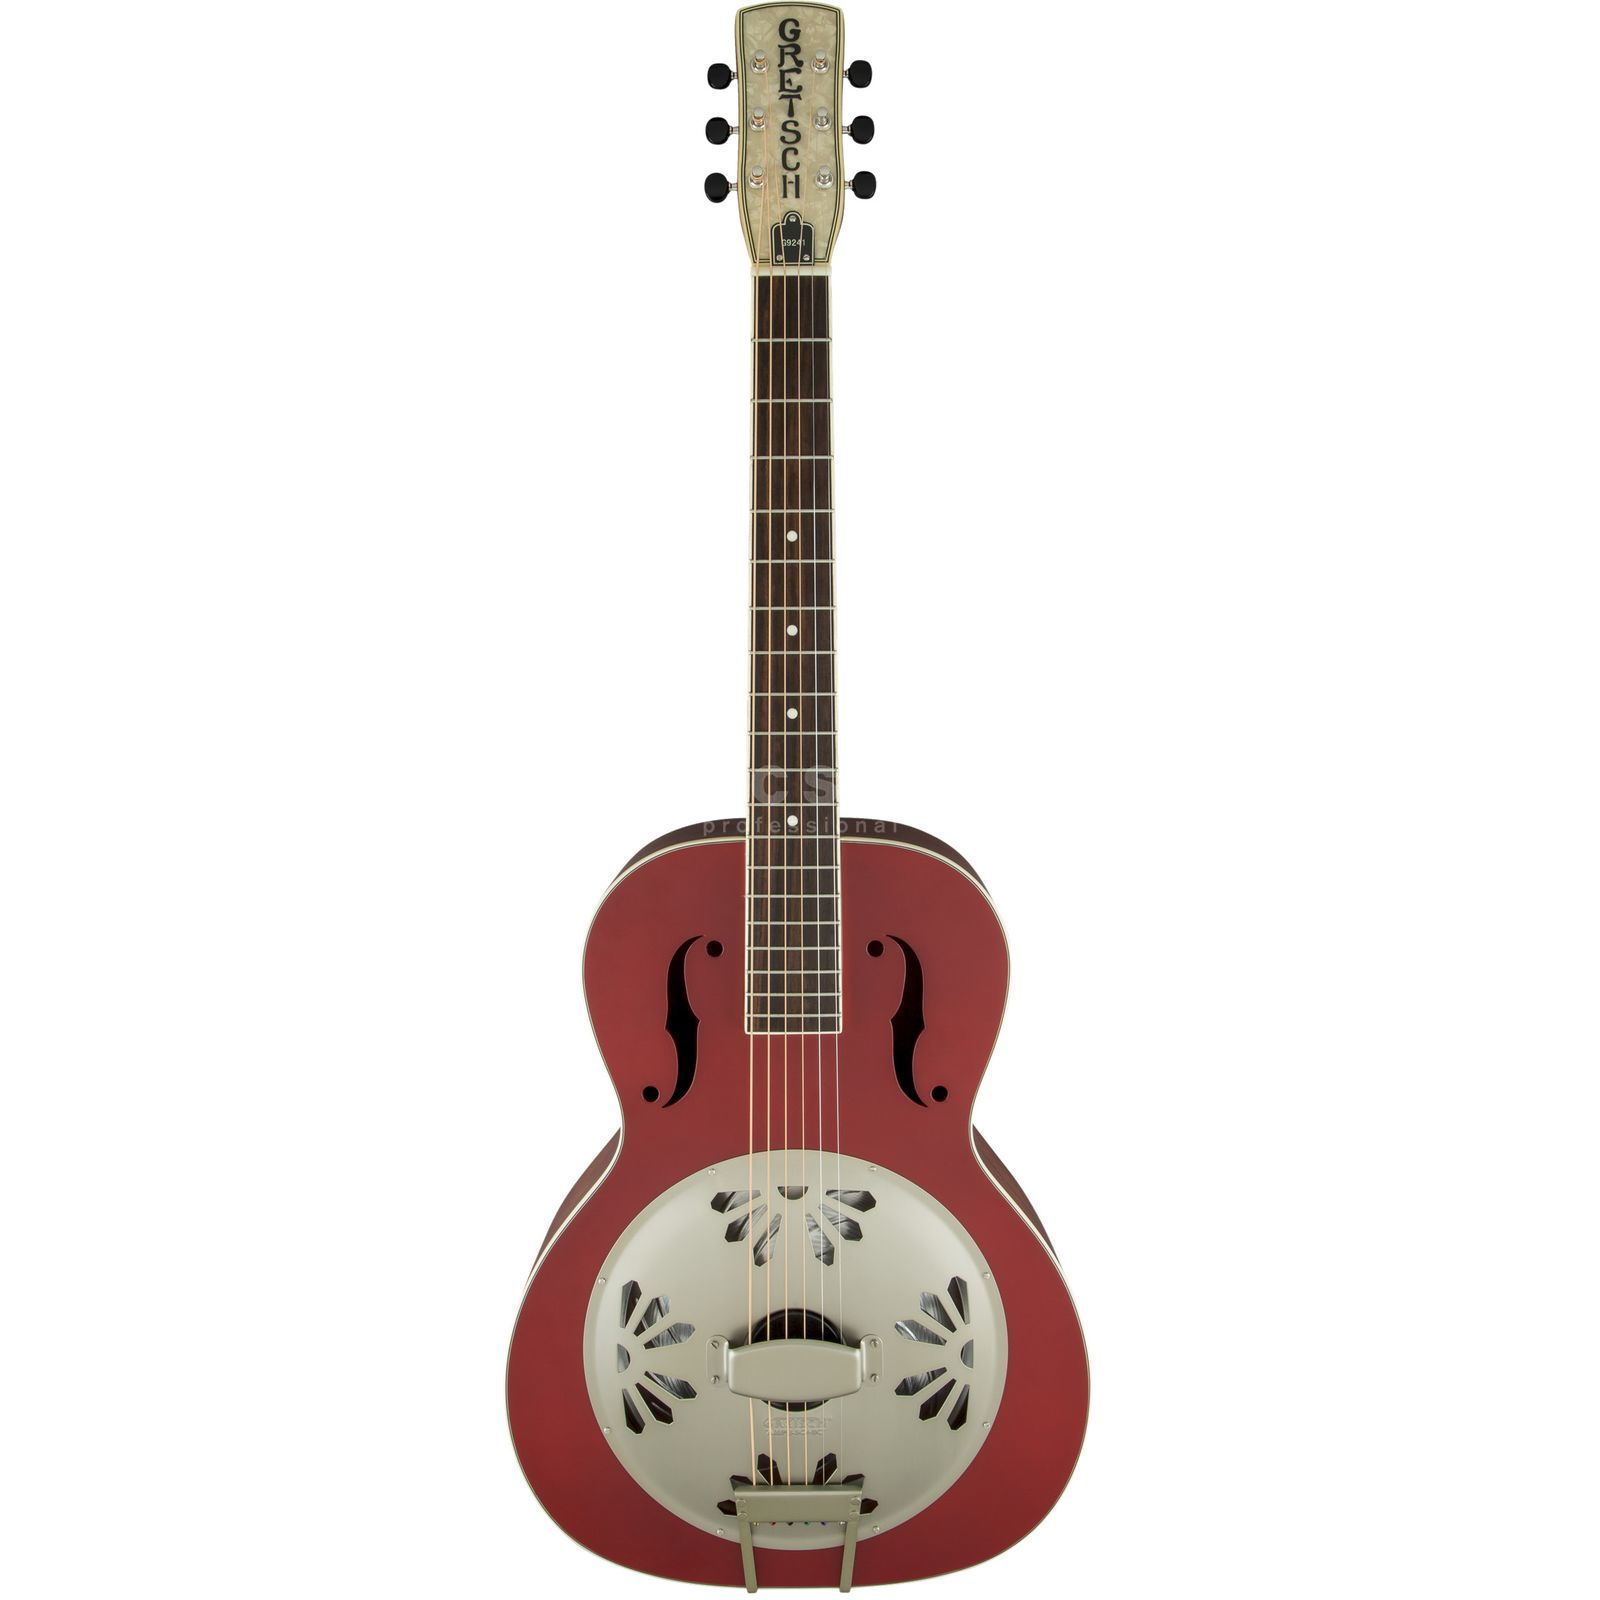 Gretsch G9241 Alligator Biscuit Round Neck Chieftain Red Image du produit